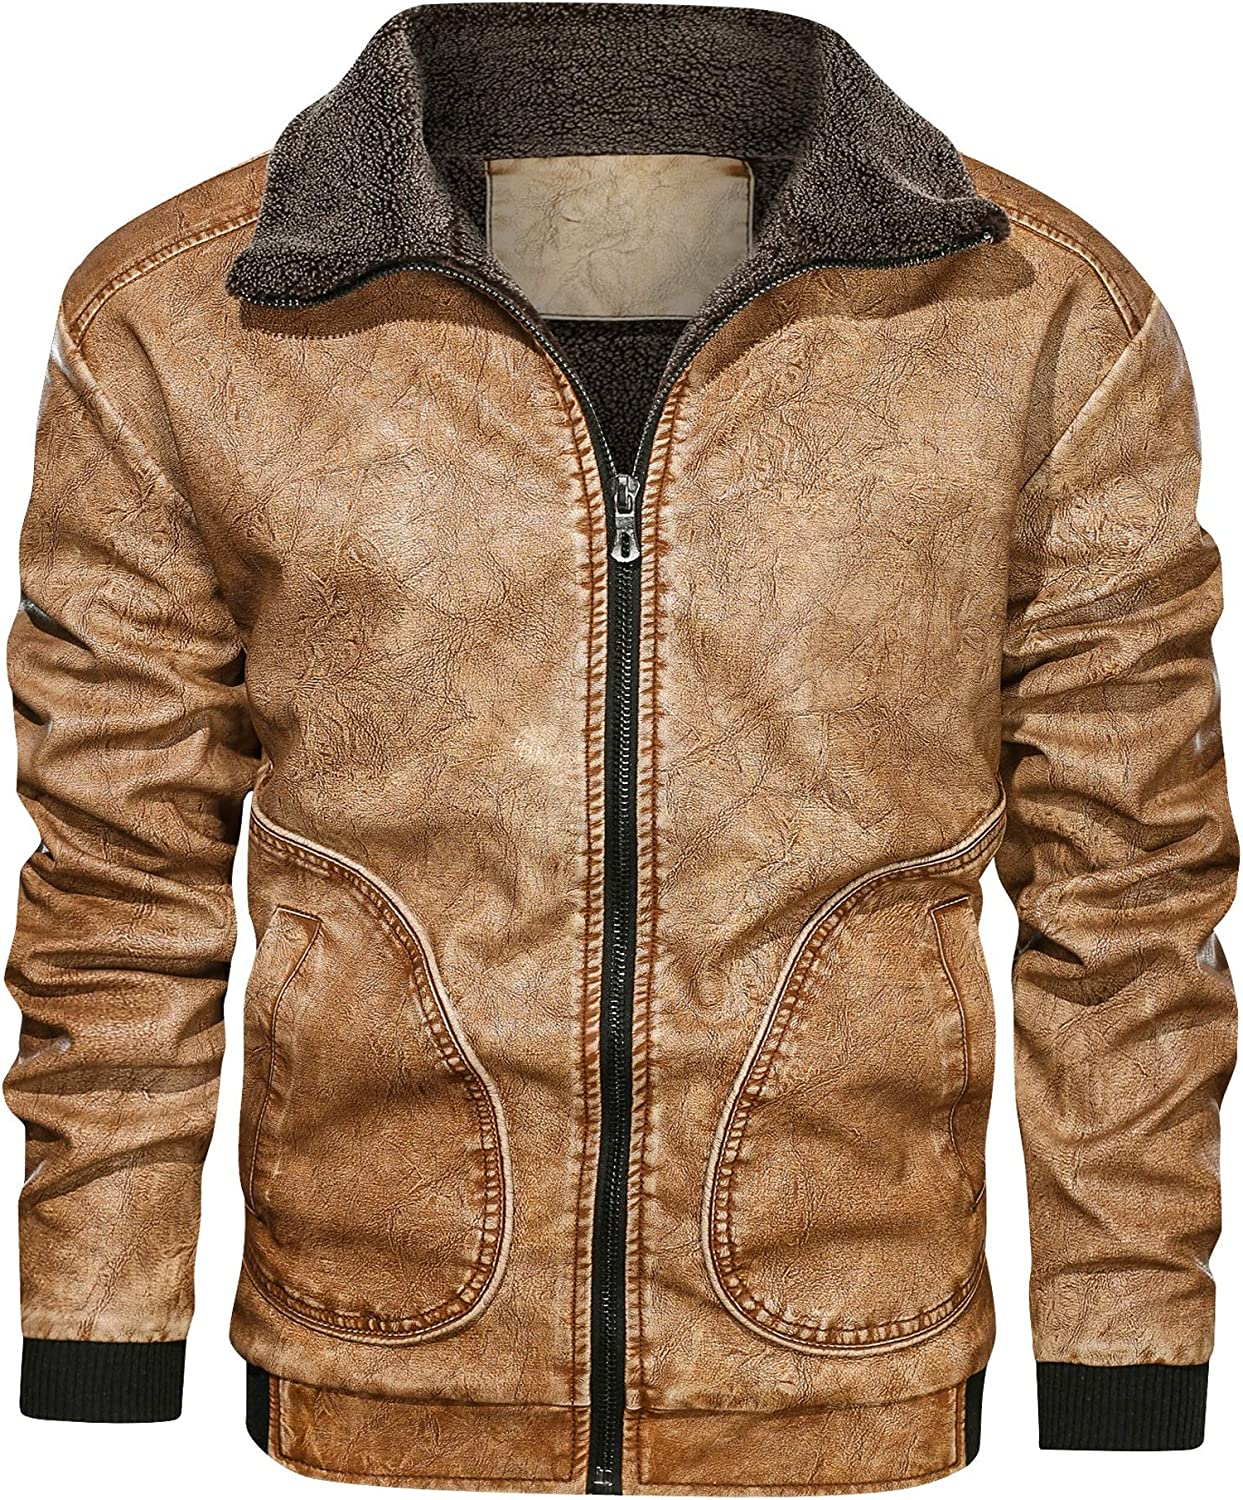 OLBGELYING 2020NEW Leather Jackets Winter Fleece Thick Men Jacket European size Dropshipping